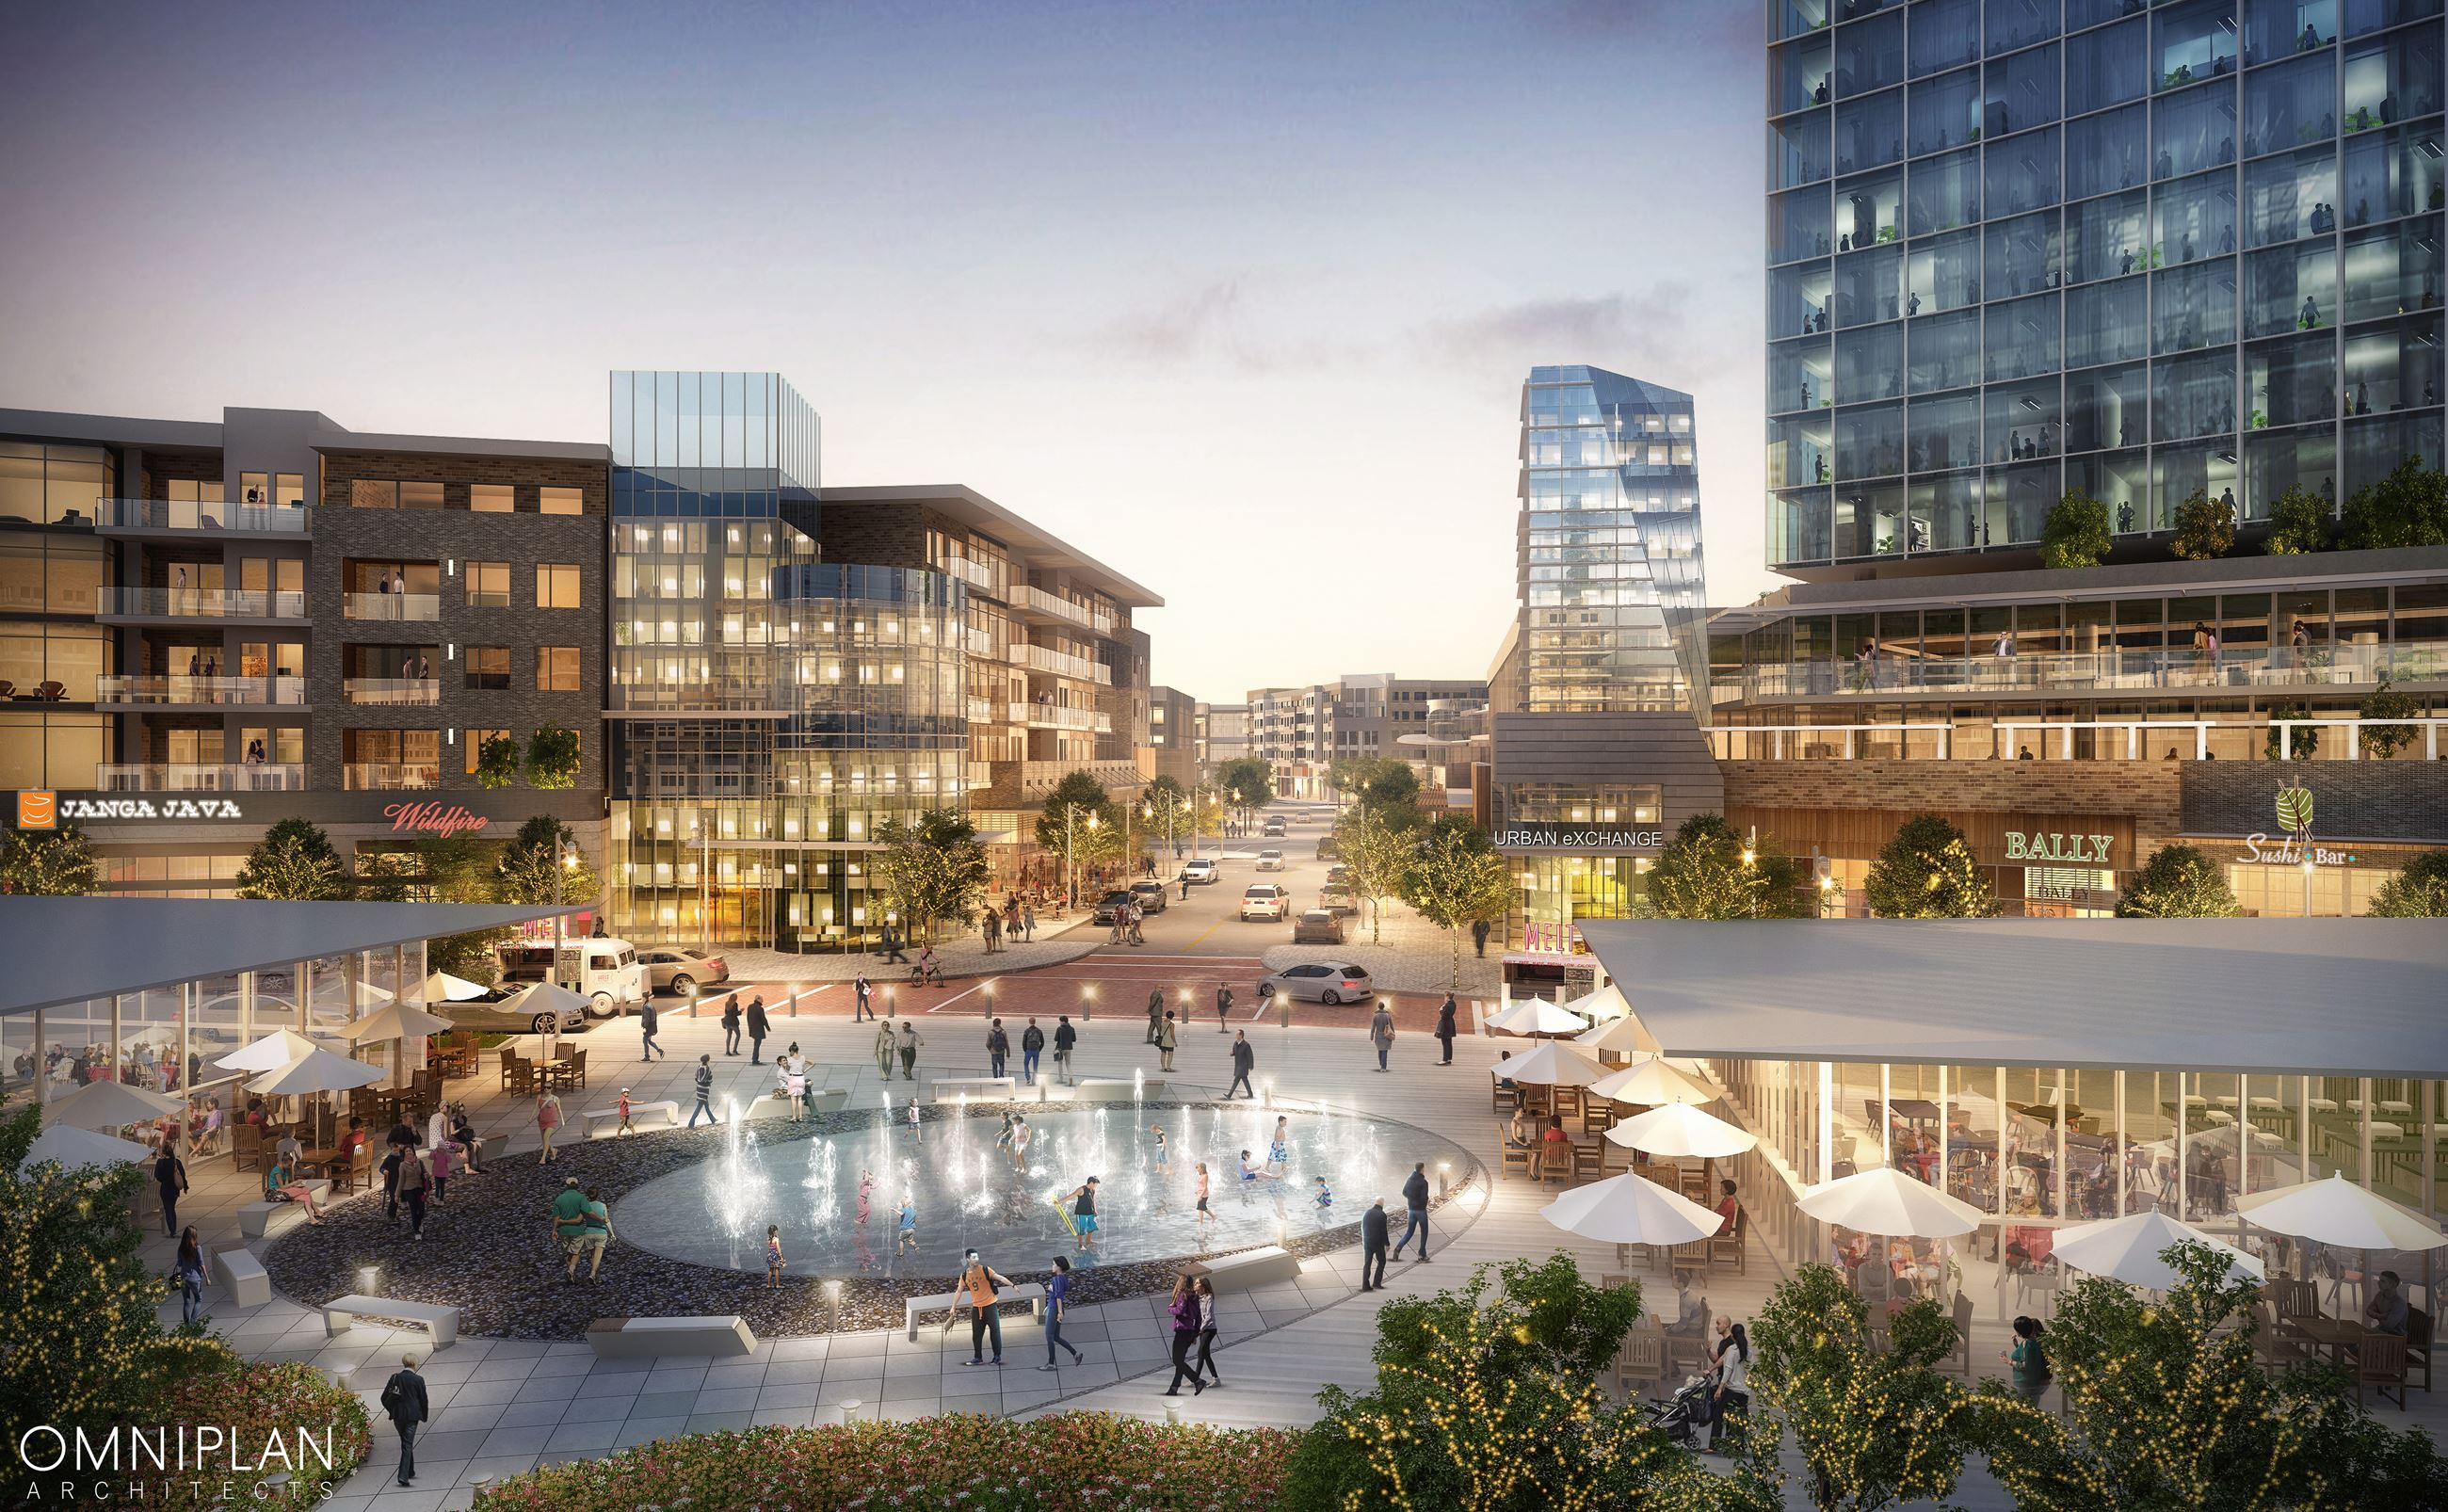 Artist rendering of an urban development with central fountain, park, patio restaurants, office buil